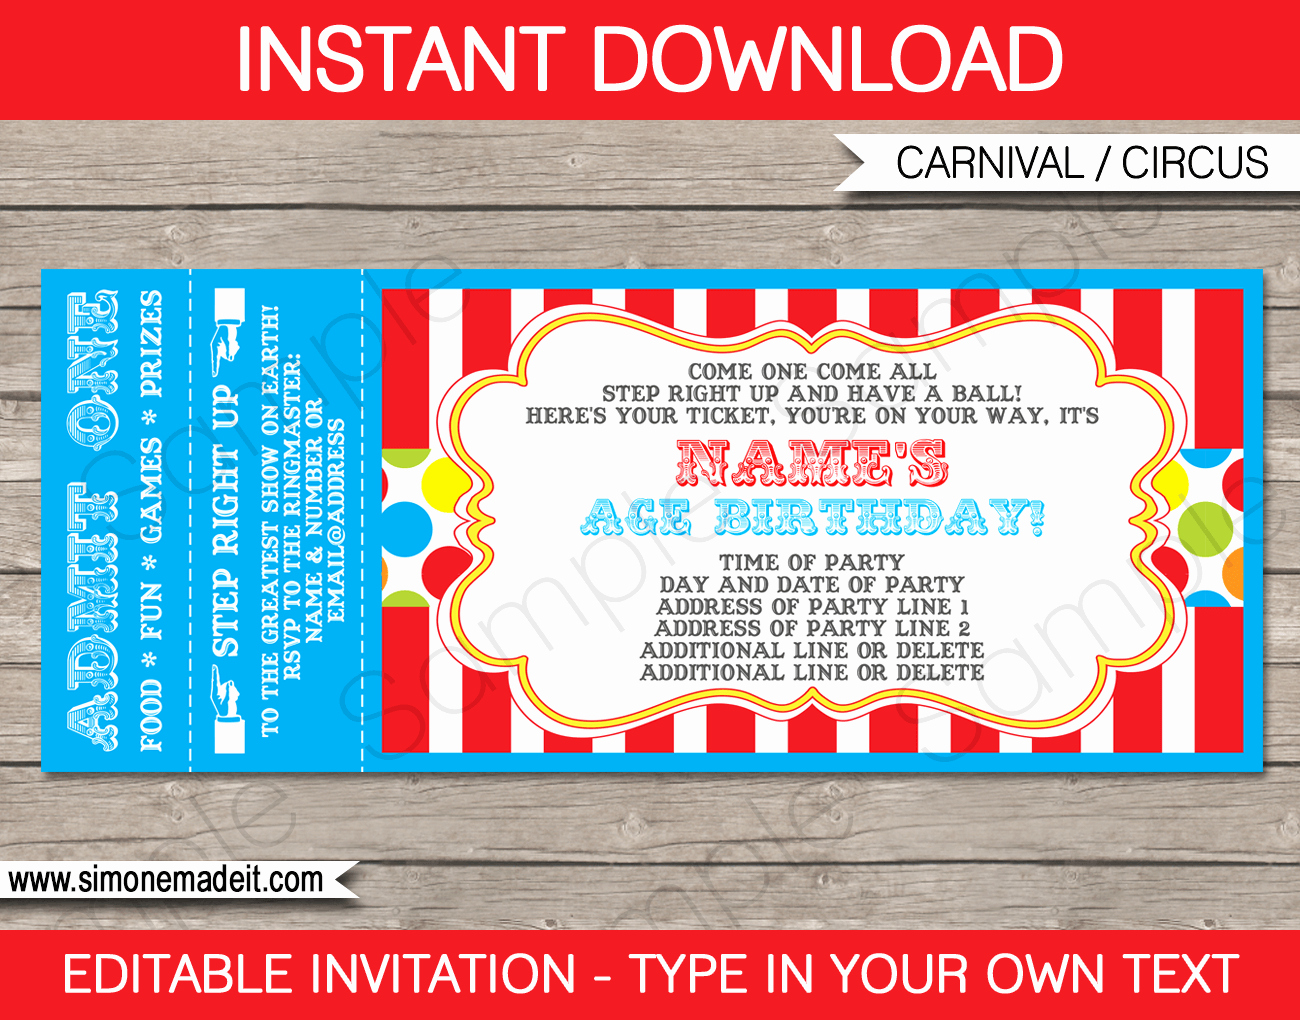 How to Make Ticket Invitations Lovely Carnival Ticket Invitation Template – Colorful 2